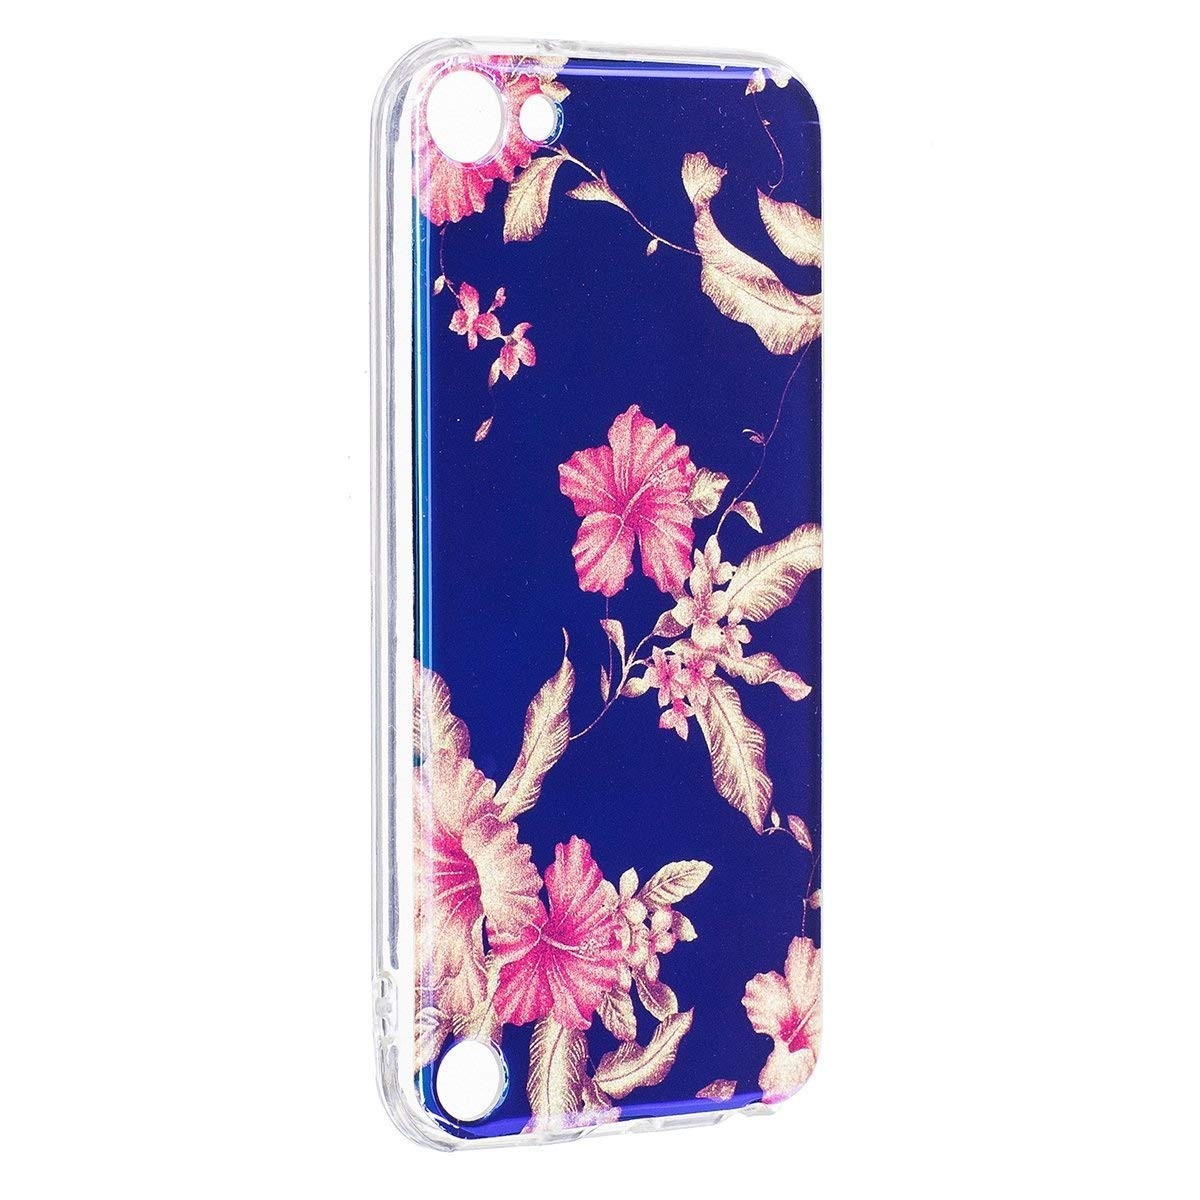 Ekakashop Colorata Painting Fiori Pattern Blu Riflettente 3D TPU Case per Apple iPod Touch 6/iPod Touch 5 con 1x Kickstand (Colore Casuale), Piccola Rosa kaka048201